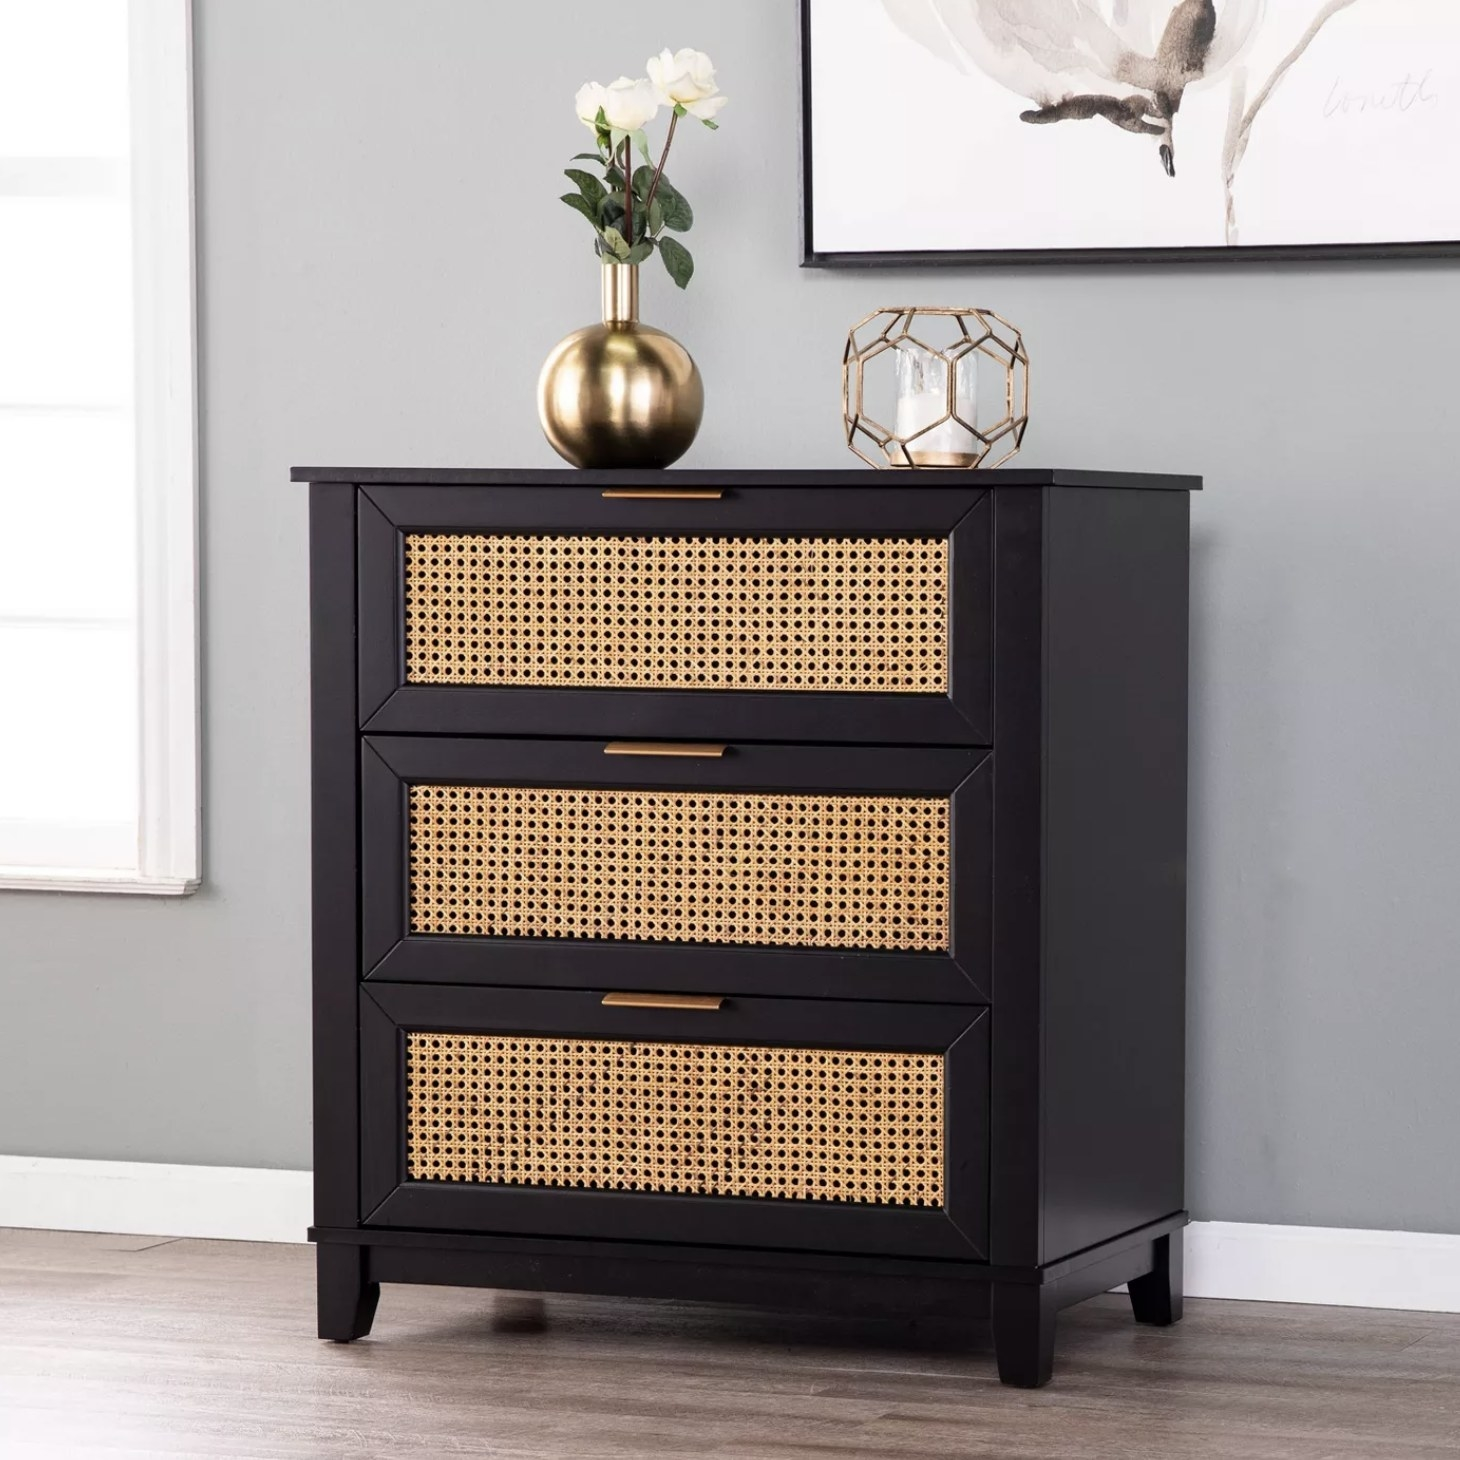 A black dresser with wicker paneling